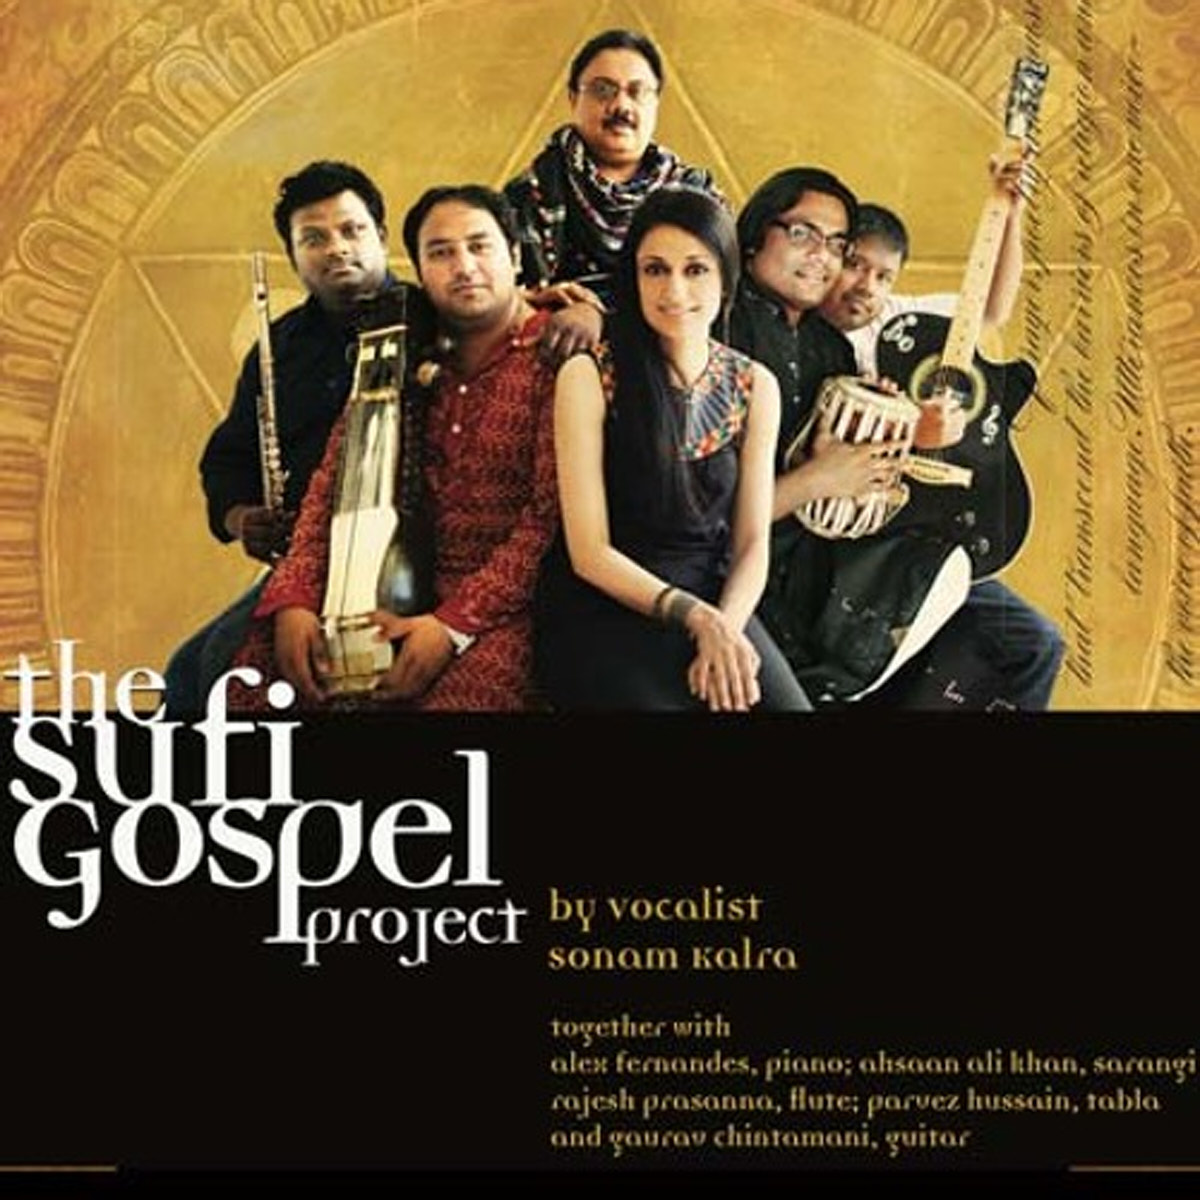 Discovering the Sufi Gospel Project